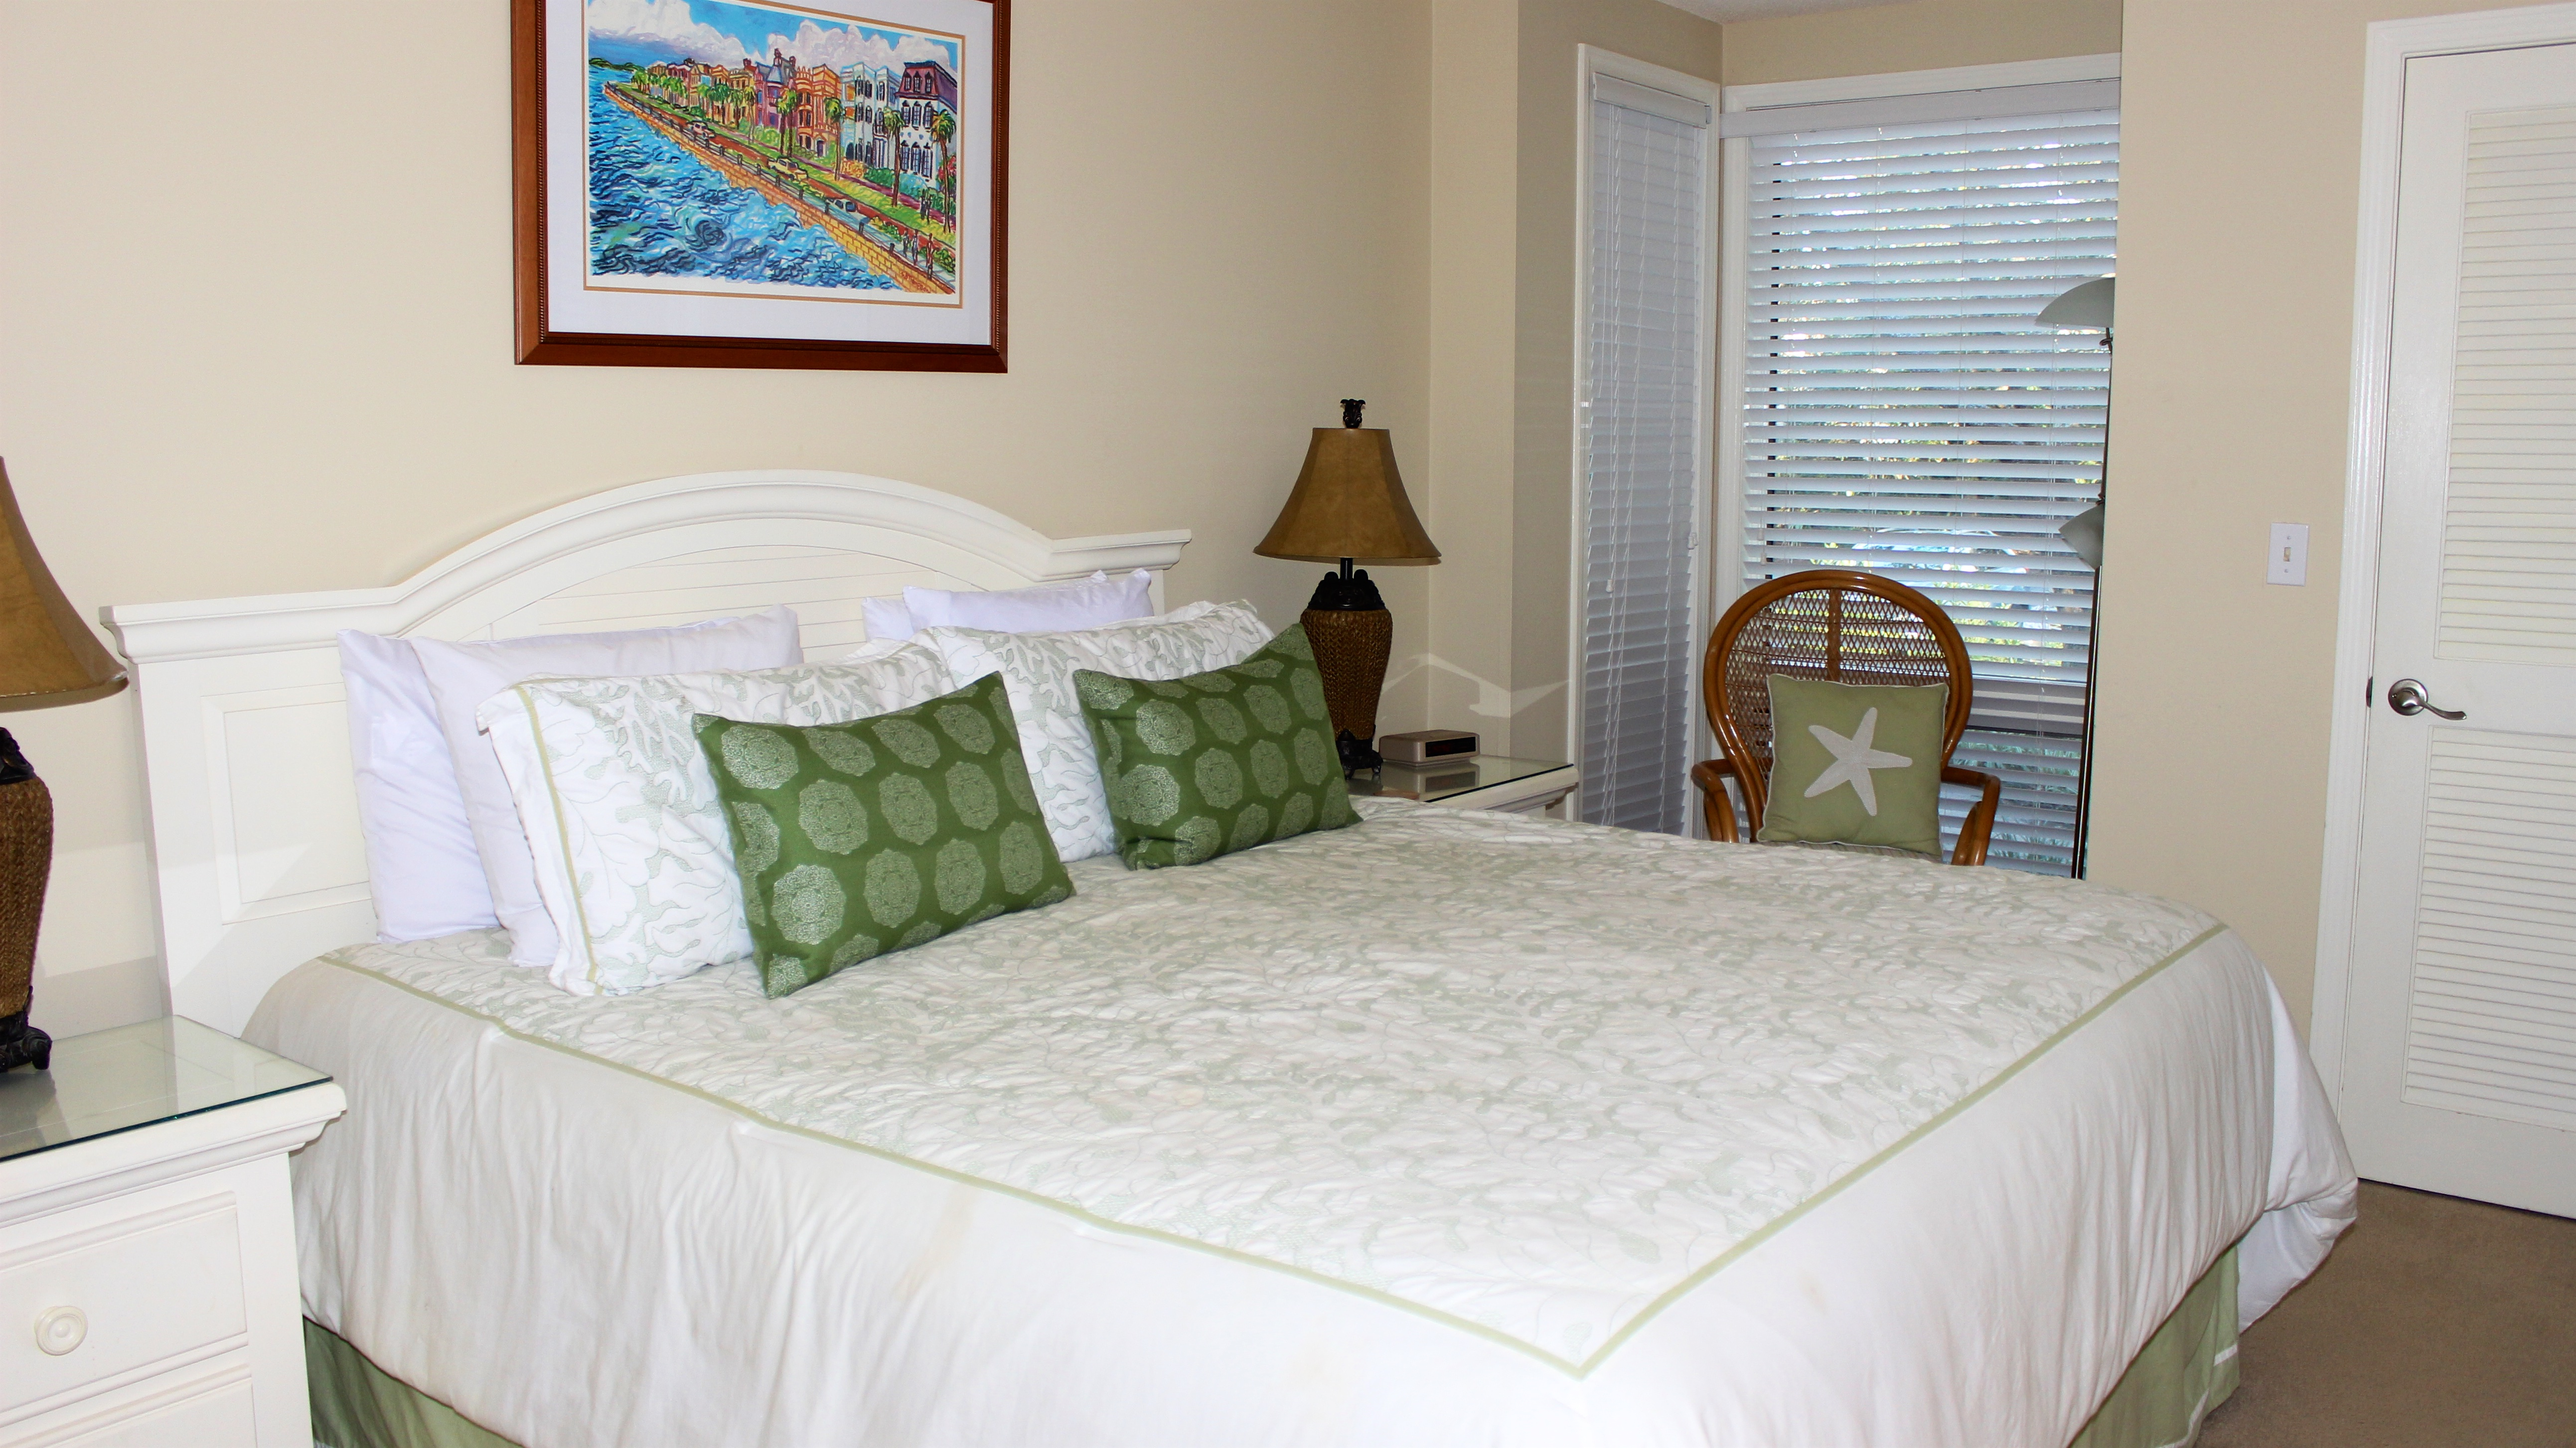 The master bedroom has a king bed.